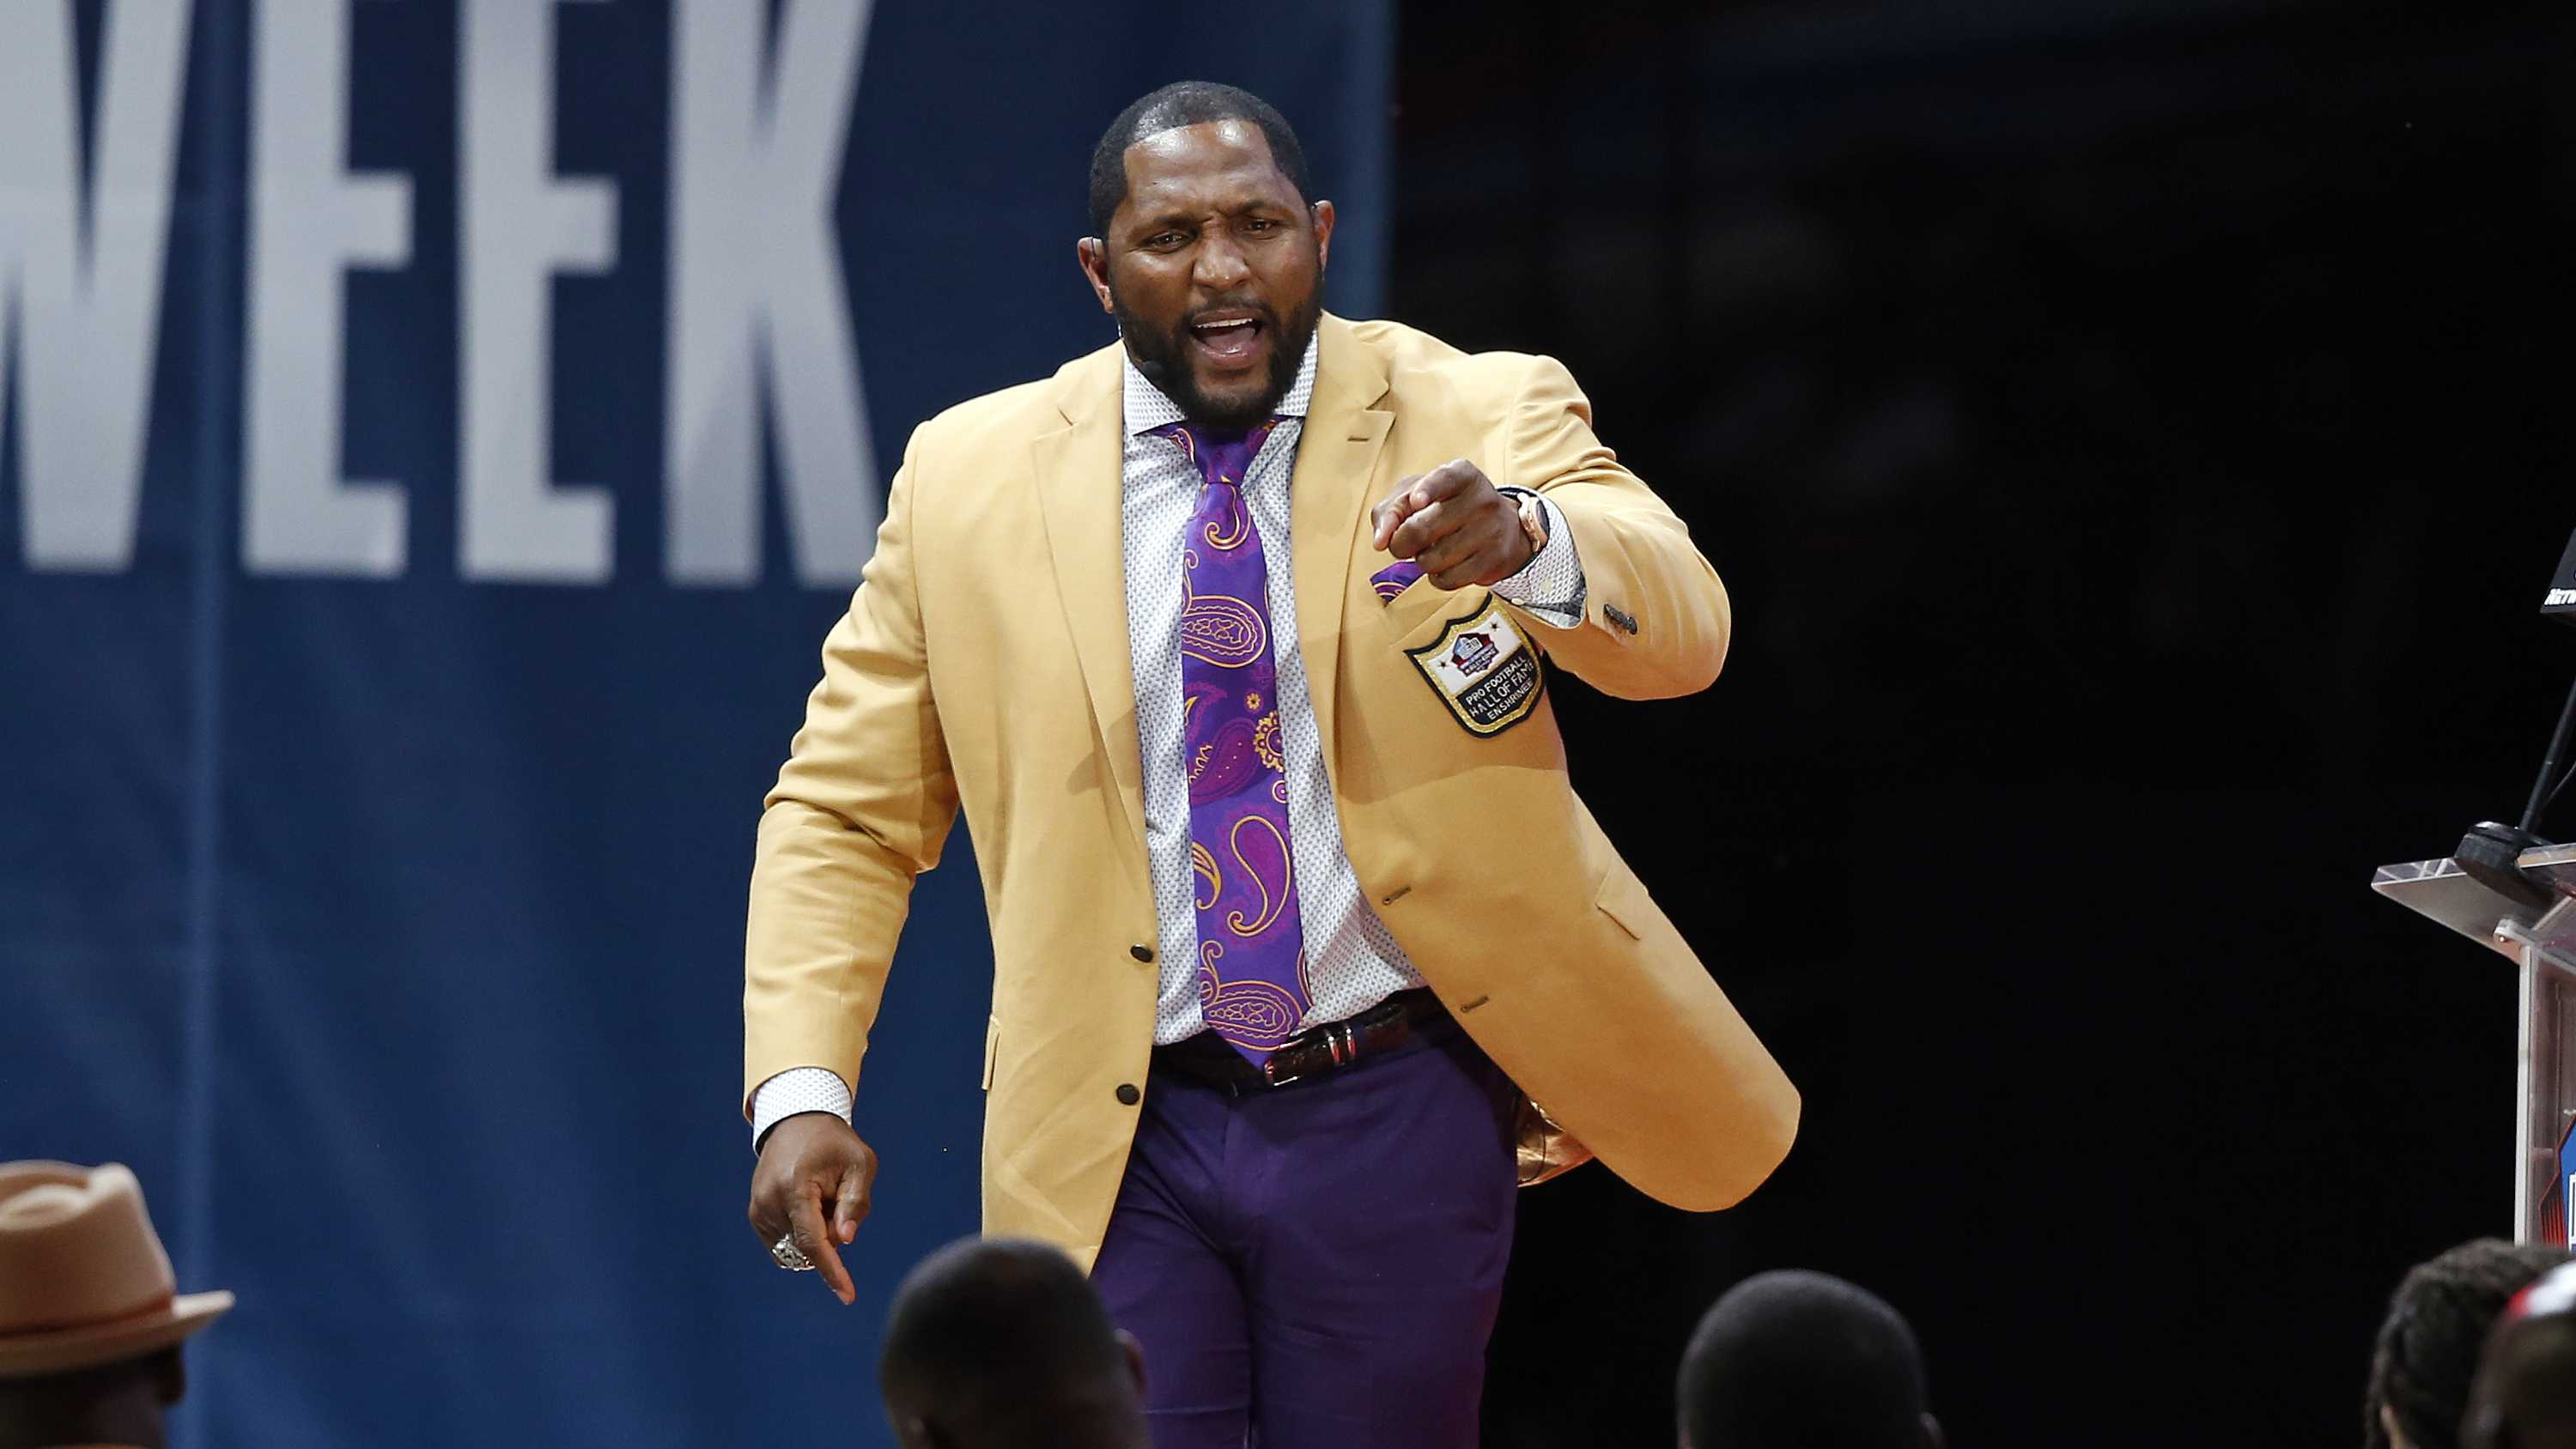 Former NFL player Ray Lewis delivers his speech during an induction ceremony at the Pro Football Hall of Fame, Saturday, Aug. 4, 2018, in Canton, Ohio.